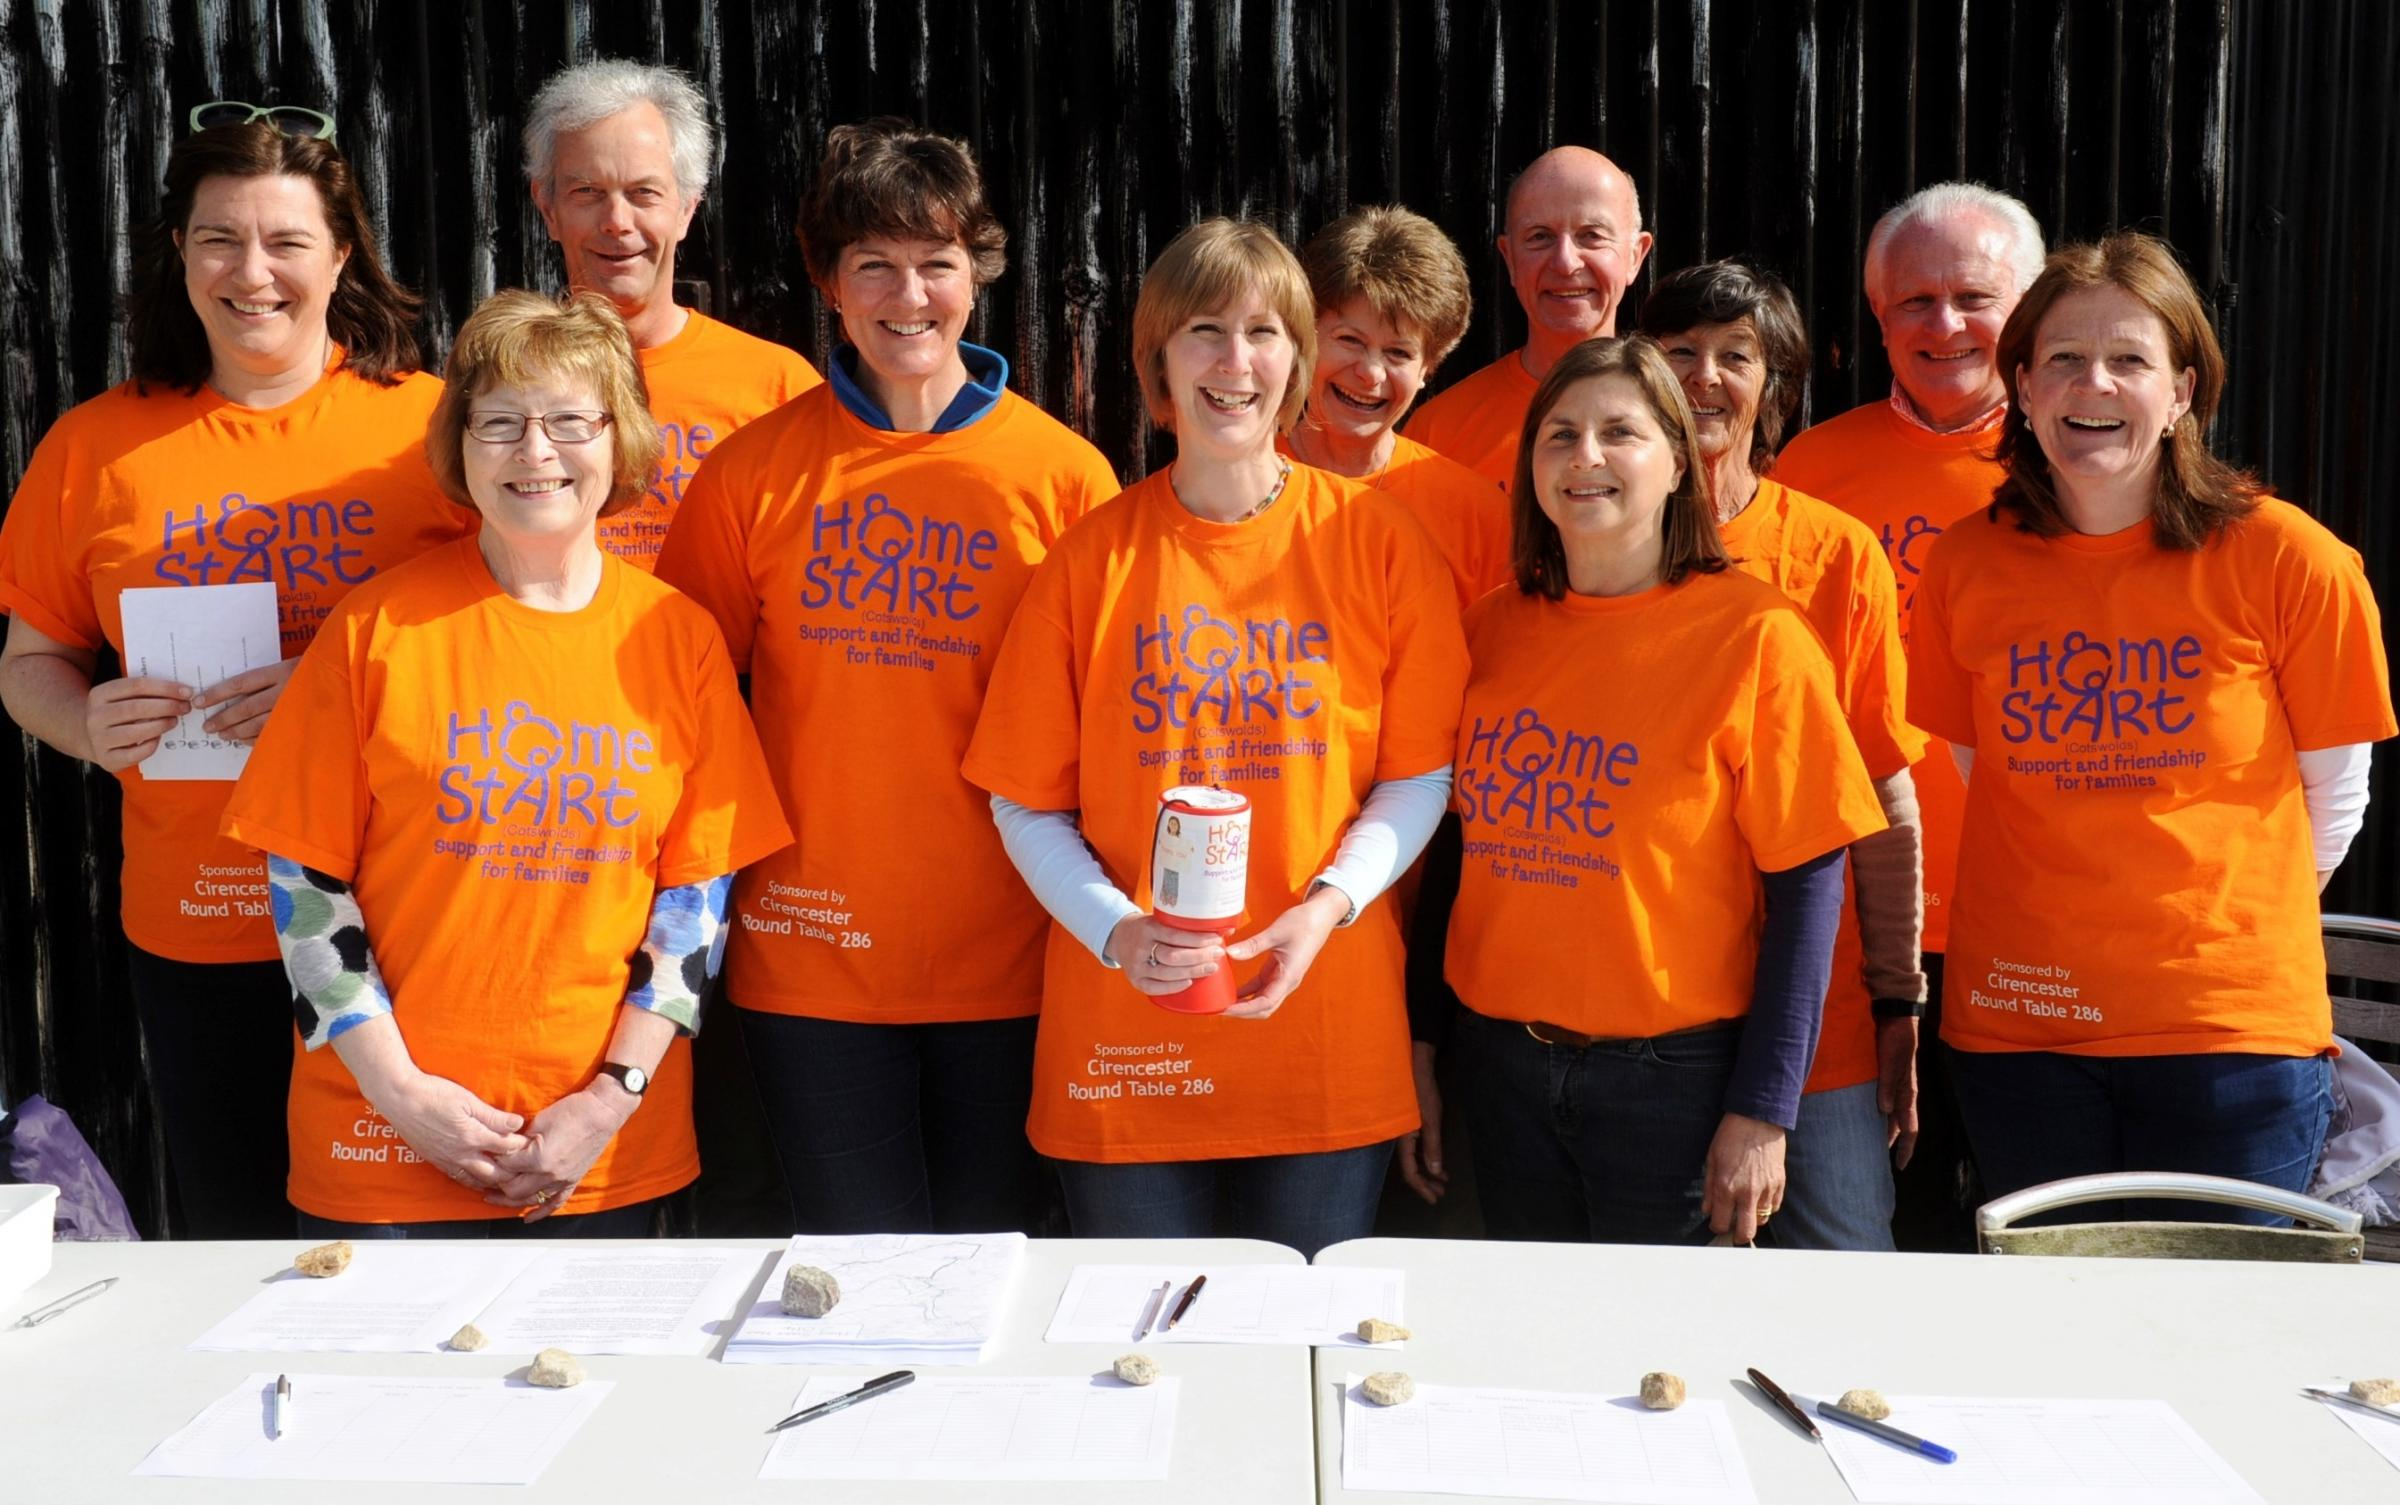 Supporters raise £4,000 for Home Start Cotswolds